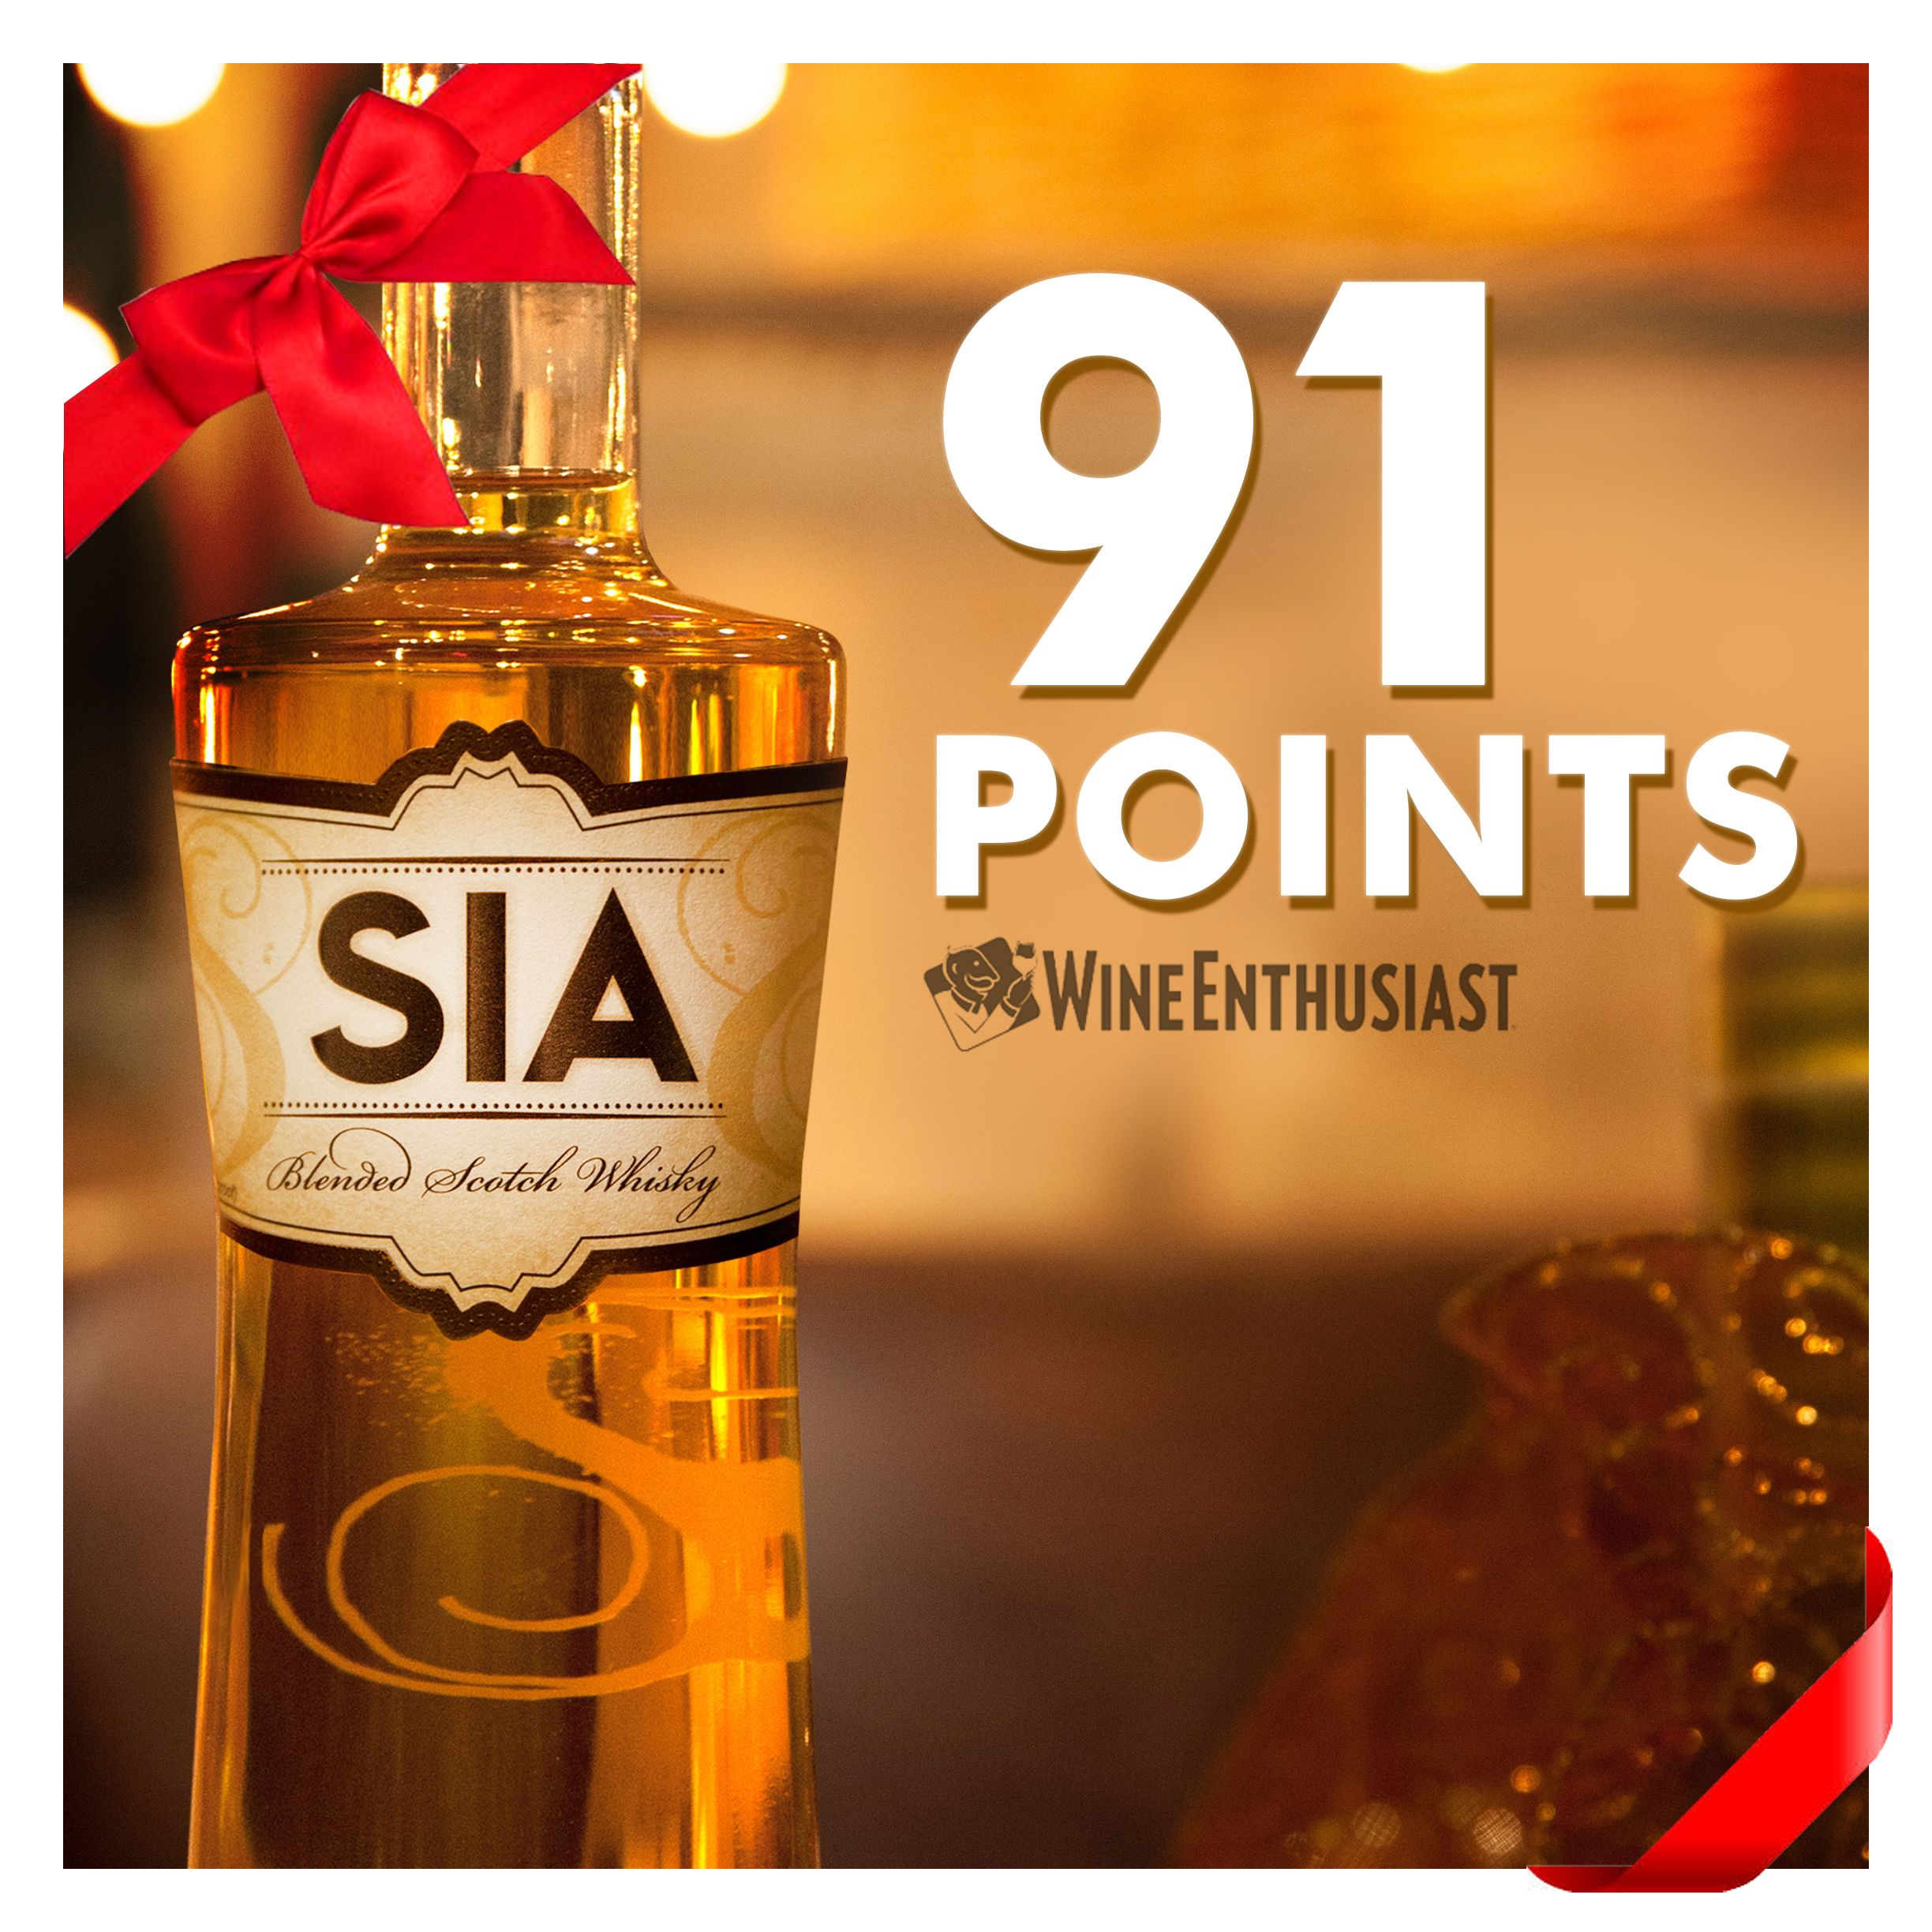 """The Top Whisky Gift Under $50 – SIA Scotch is the perfect gift for your client, family member or friend this holiday. Rated """"Outstanding"""" from Whisky Advocate Magazine, 91 Points from Wine Enthusiast, and a Double Gold Medal Winner, SIA Scotch Whisky is the perfect gift idea this holiday season. Shipping available."""